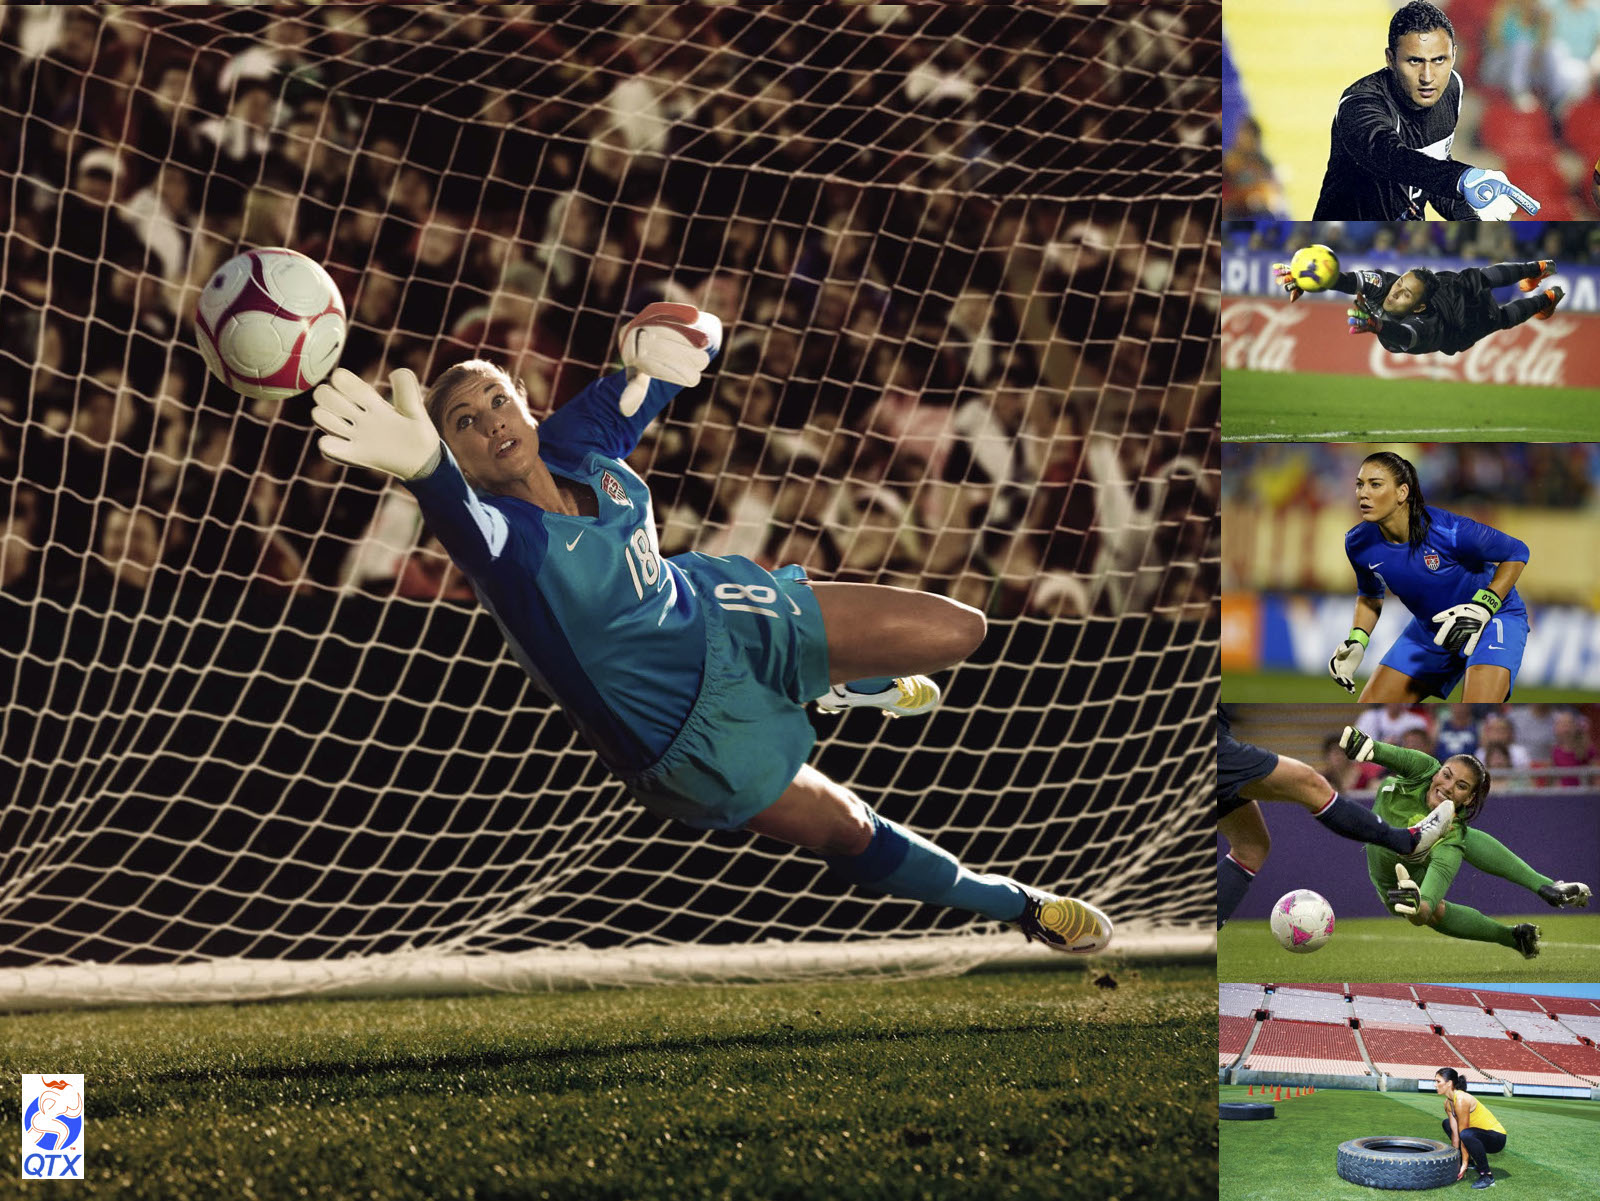 ABOVE,  Hope solo  and  Keylor Navas  in action. Hope solo is an american goalkeeper, dual olympic gold medallist and world cup medalist. Keylor Navas is currently Real Madrid's goalkeeper and considered the best player on his position in the last world cup playing for Costa Rica national team.